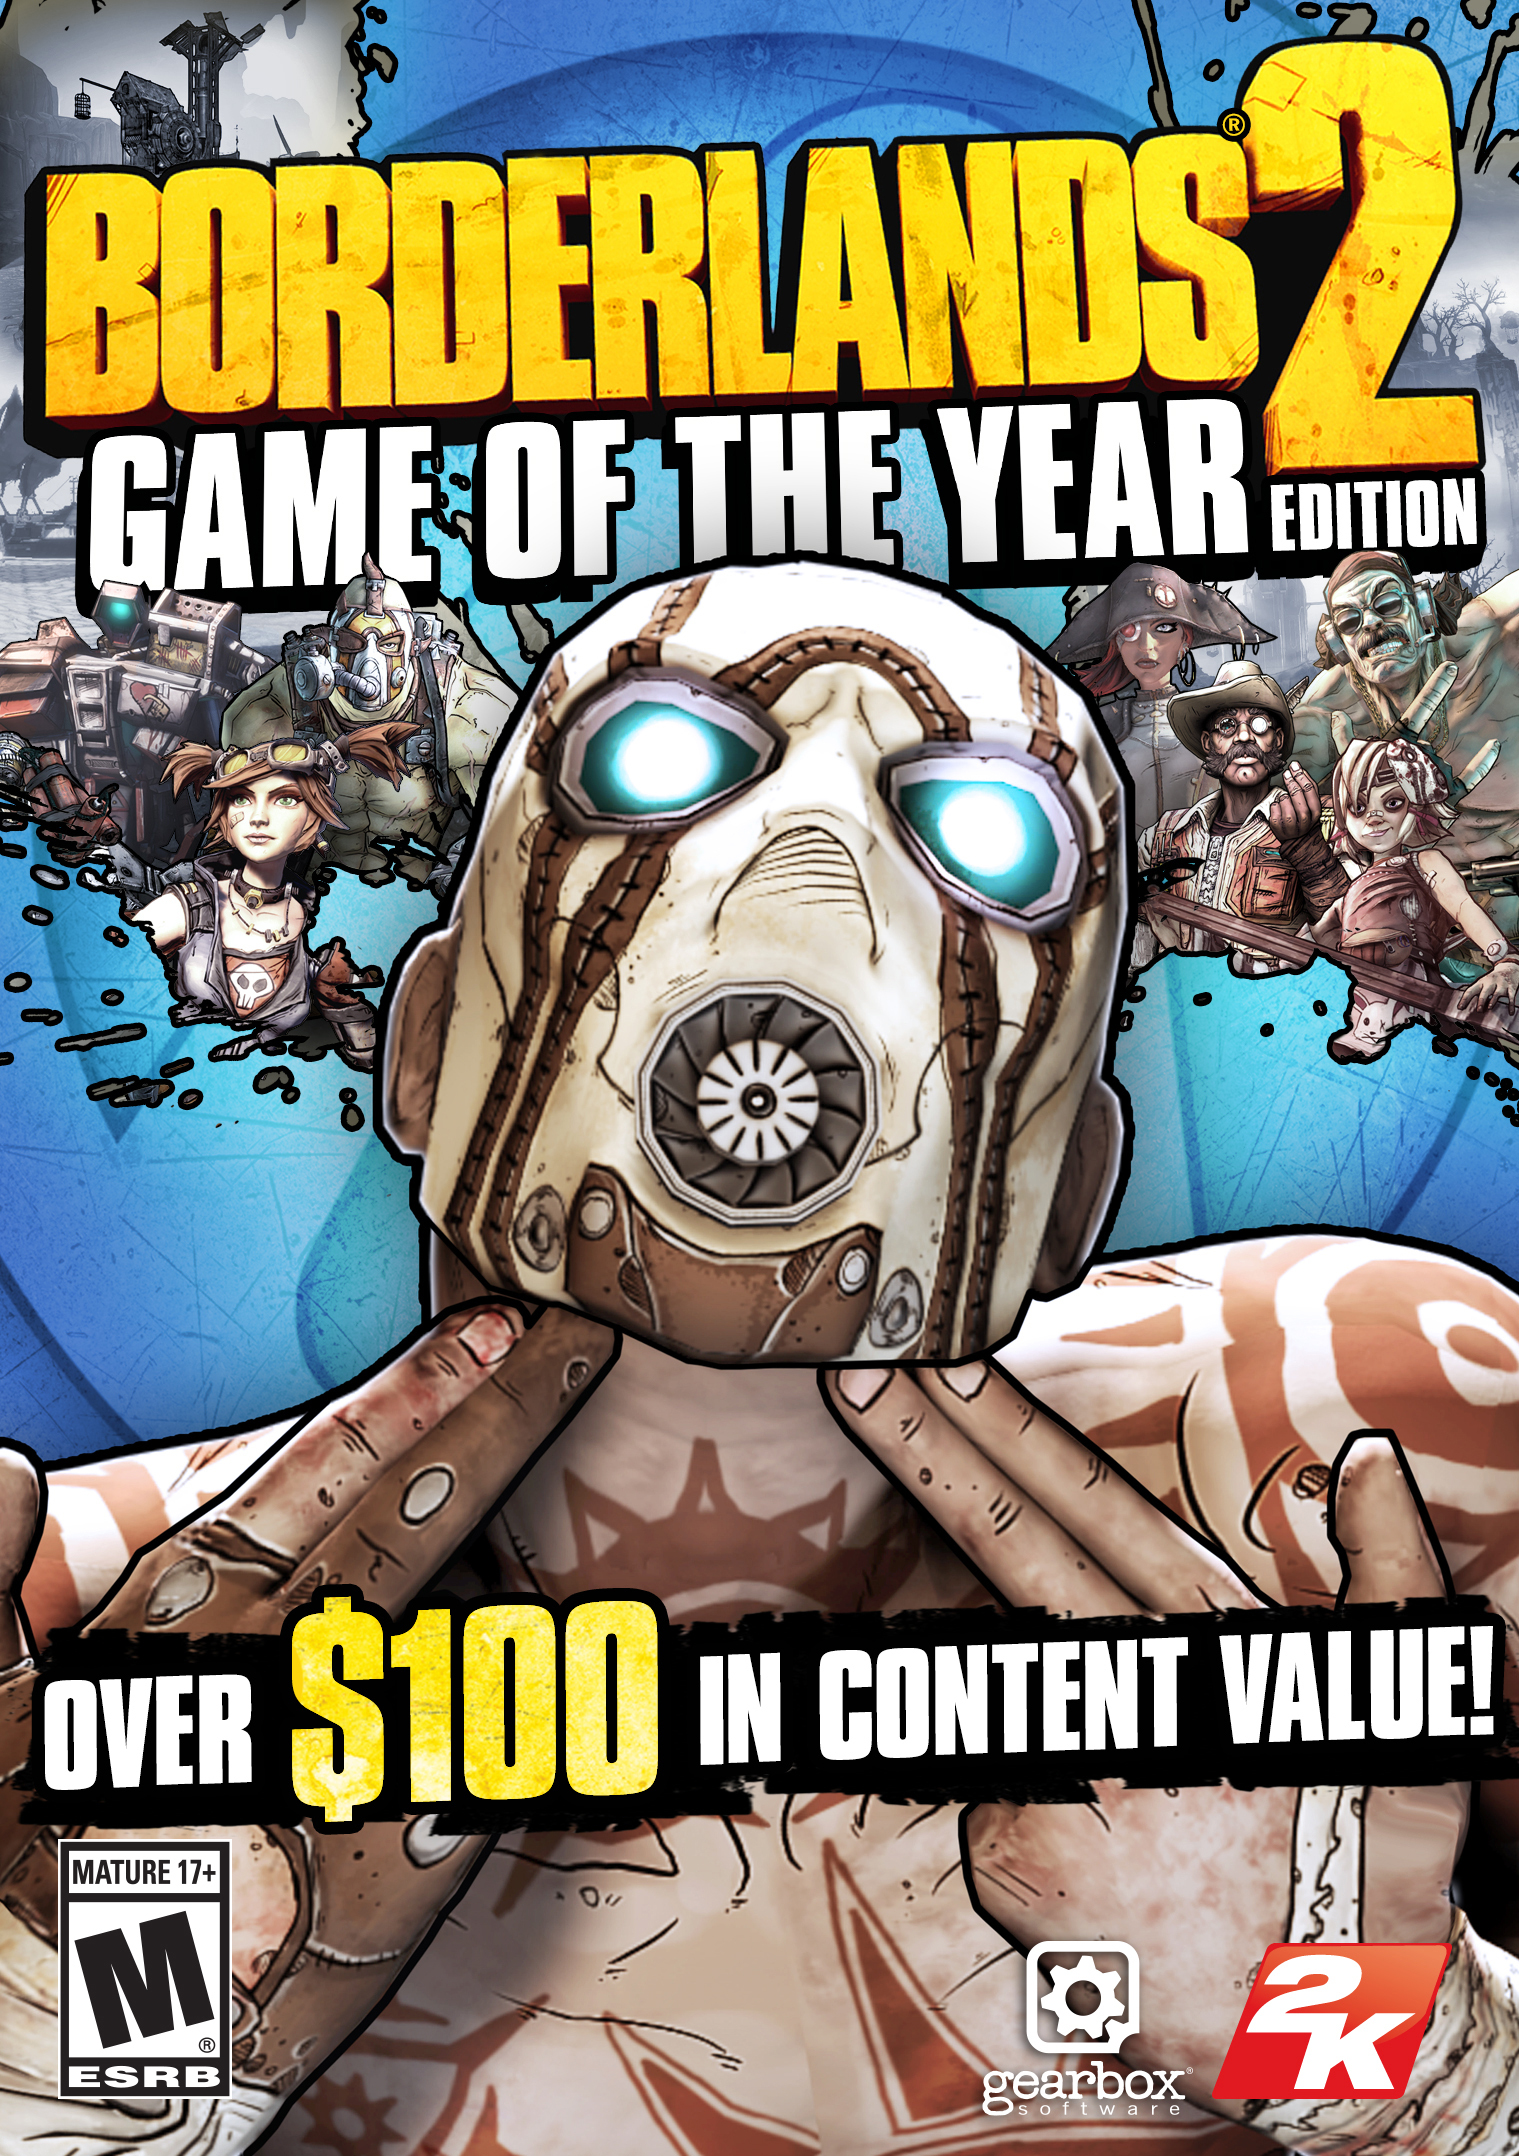 2K and Gearbox Software today announced that the Borderlands® 2 Game of the Year Edition is now available on all platforms in North America, and will be available internationally on October 11, 2013. (Graphic: Business Wire)